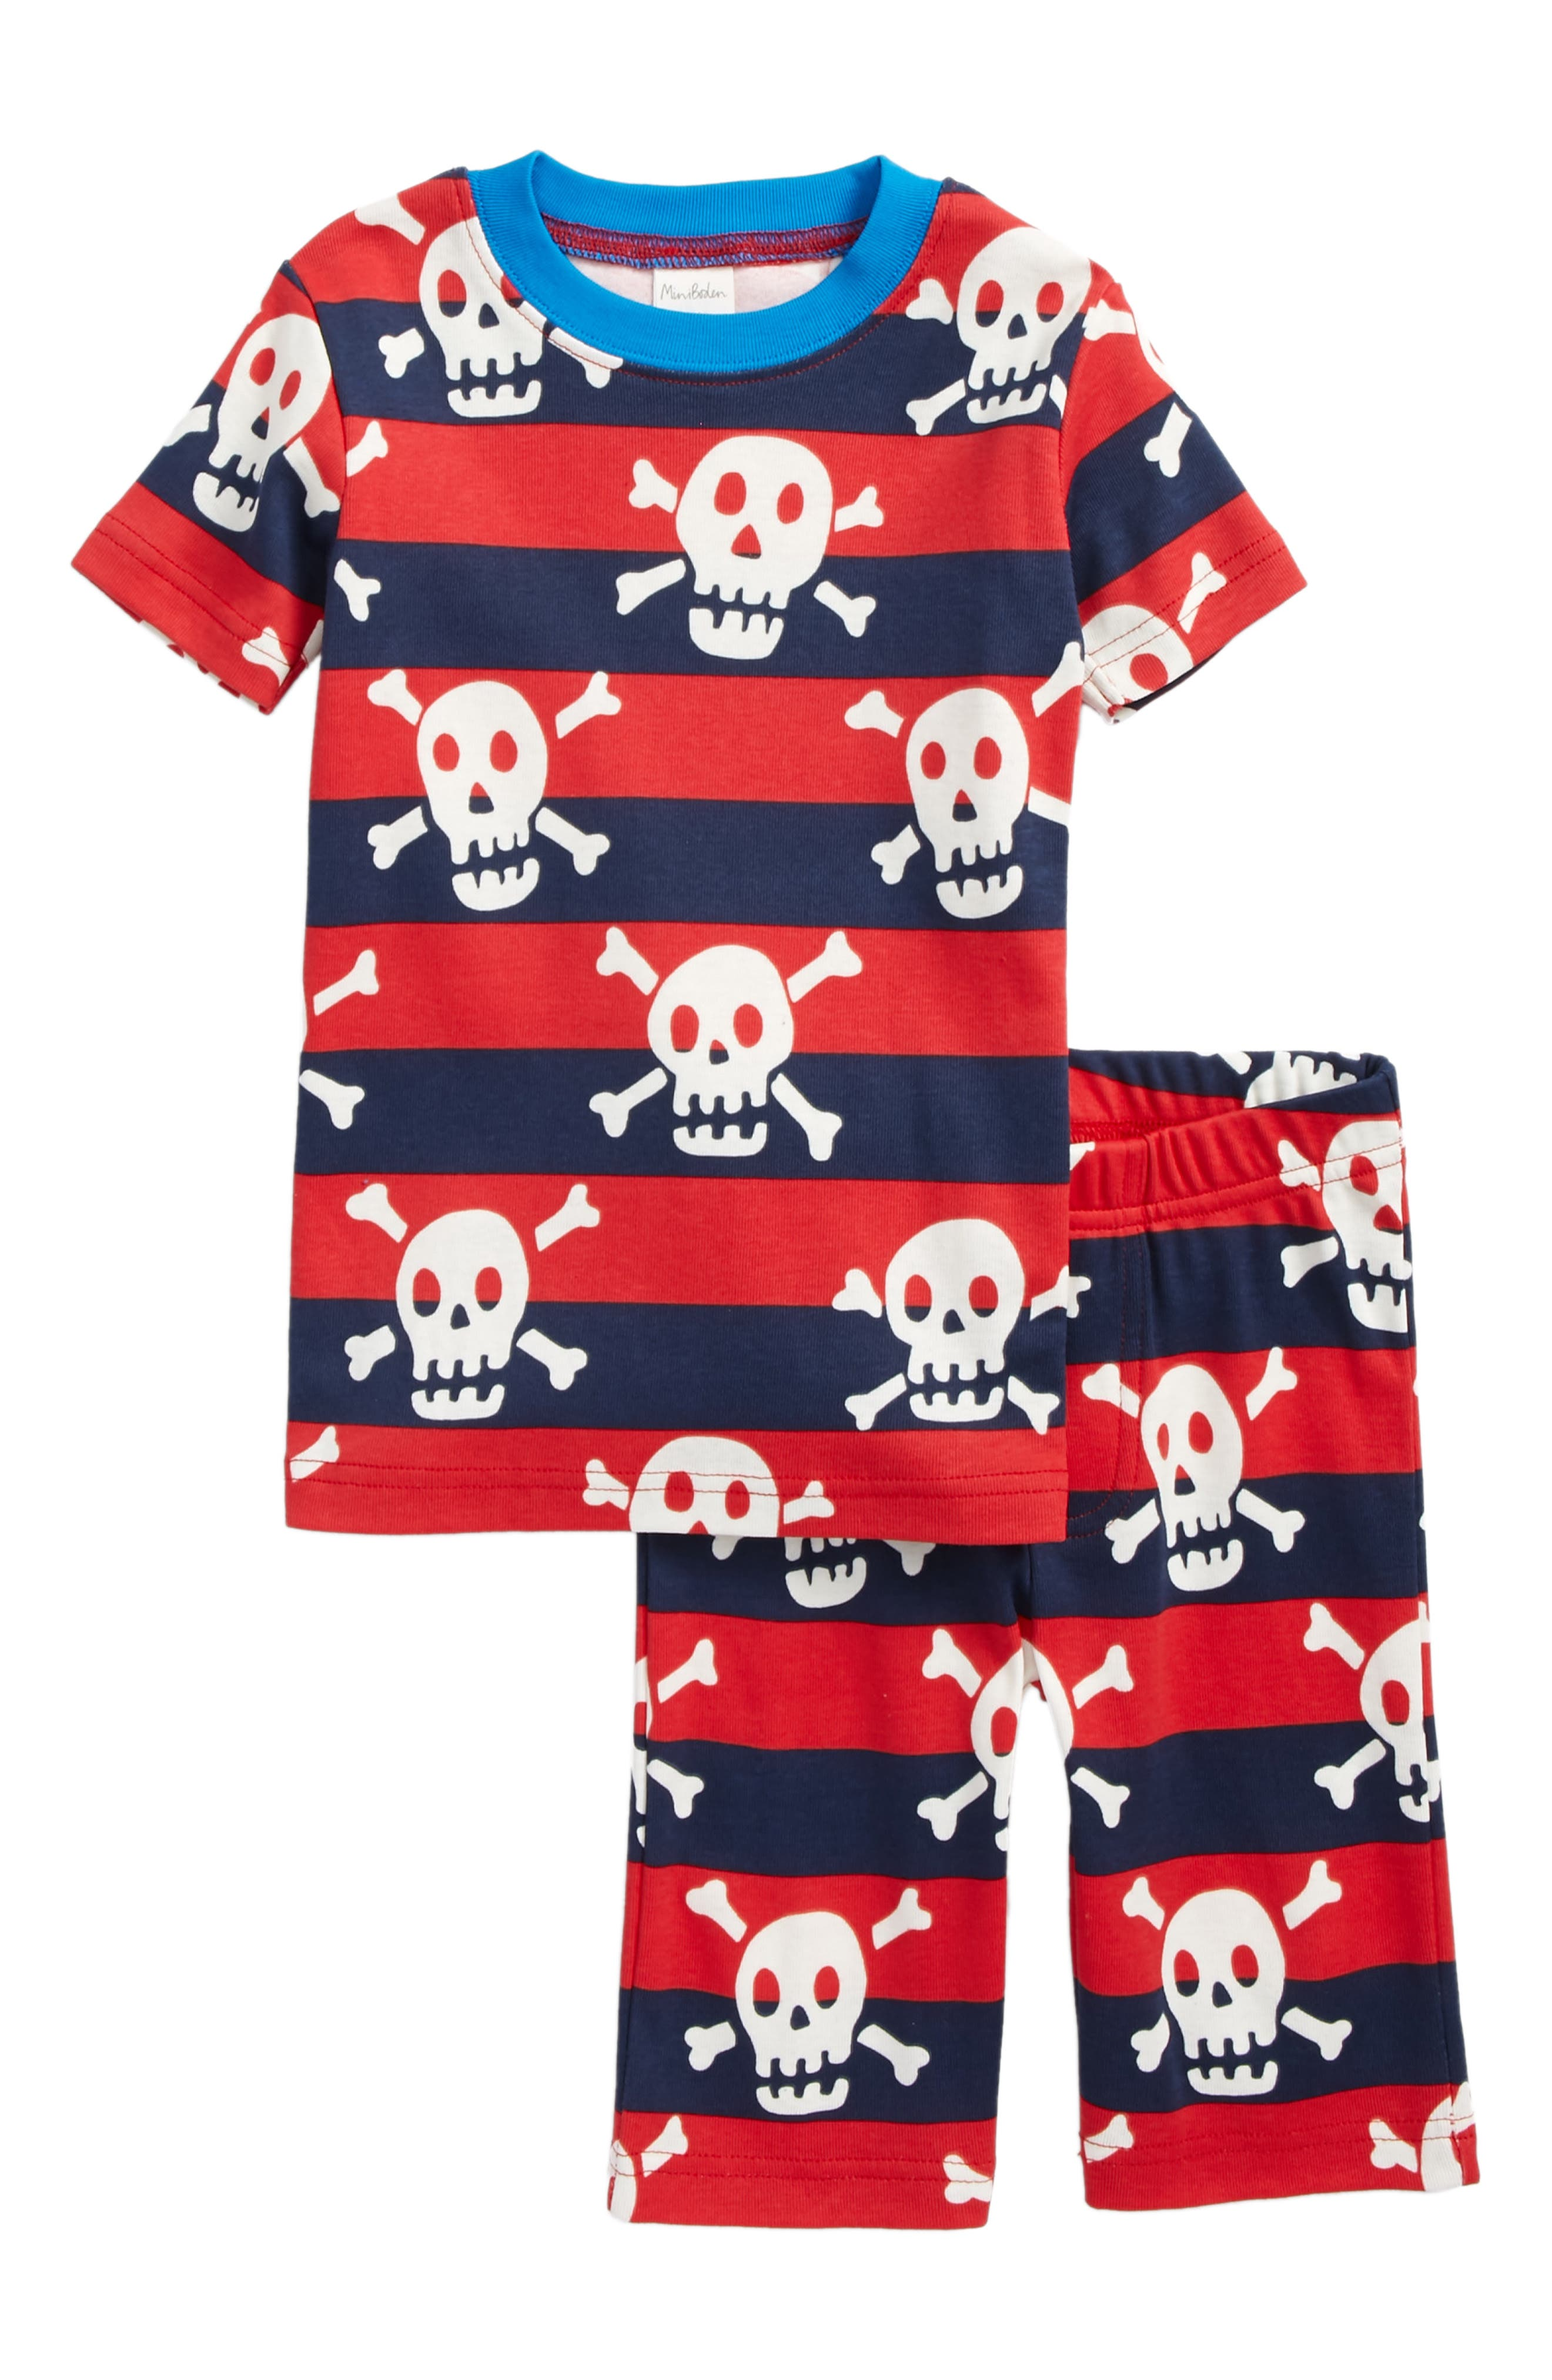 Glow in the Dark Fitted Two-Piece Pajamas,                             Main thumbnail 1, color,                             Salsa Red/School Navy